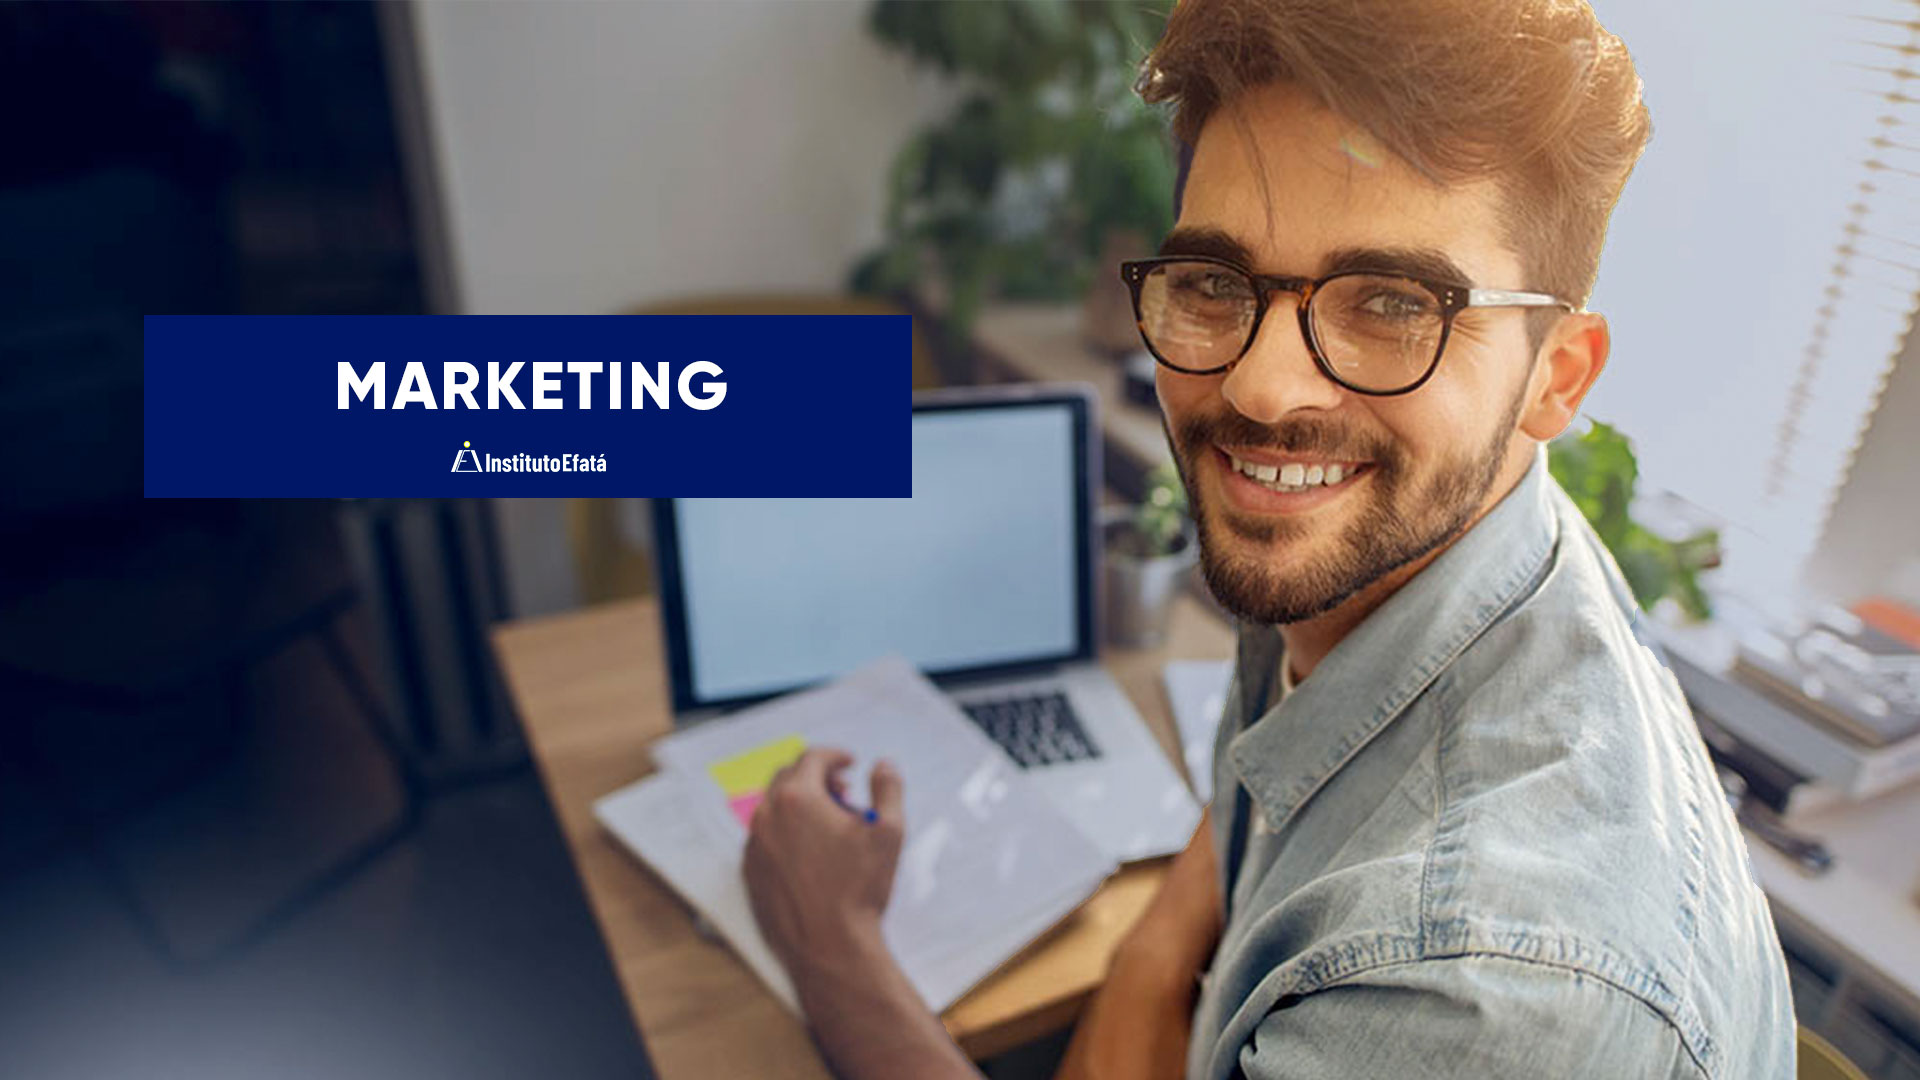 TÉCNICO EM MARKETING